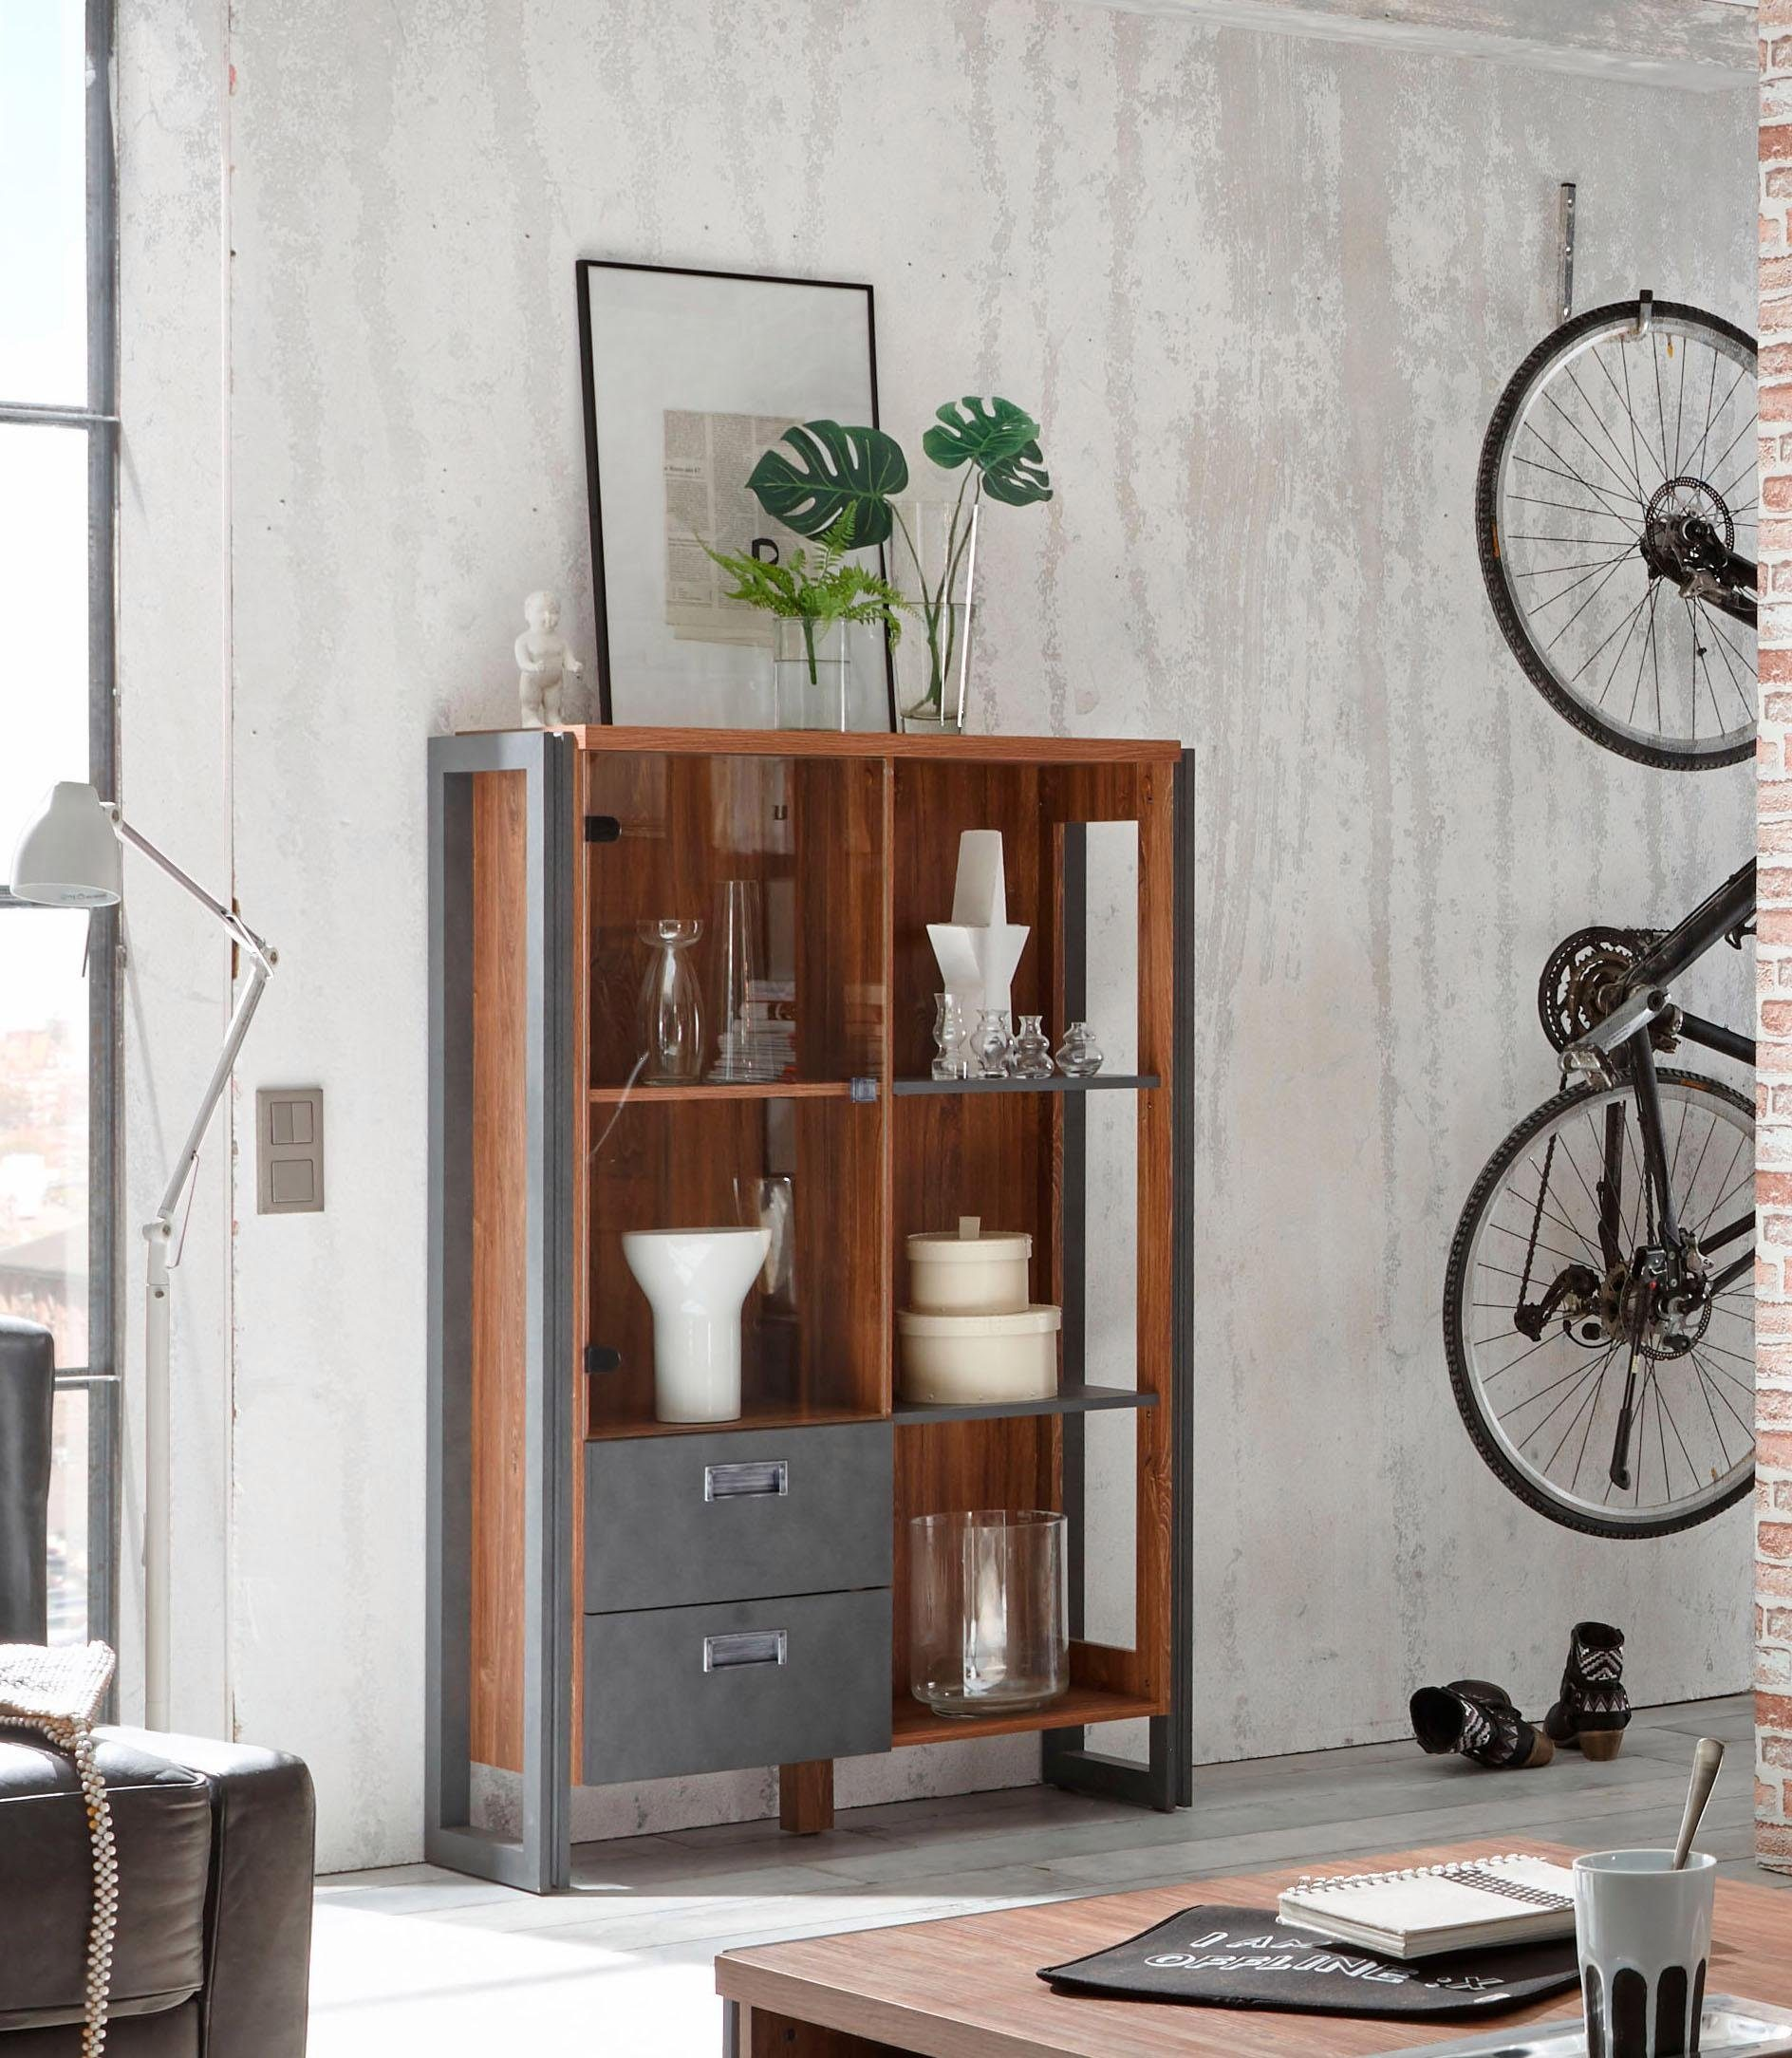 Home affaire Highboard »Detroit«, mit 2 Schubladen, Höhe 140 cm, im angesagten Industrial Look